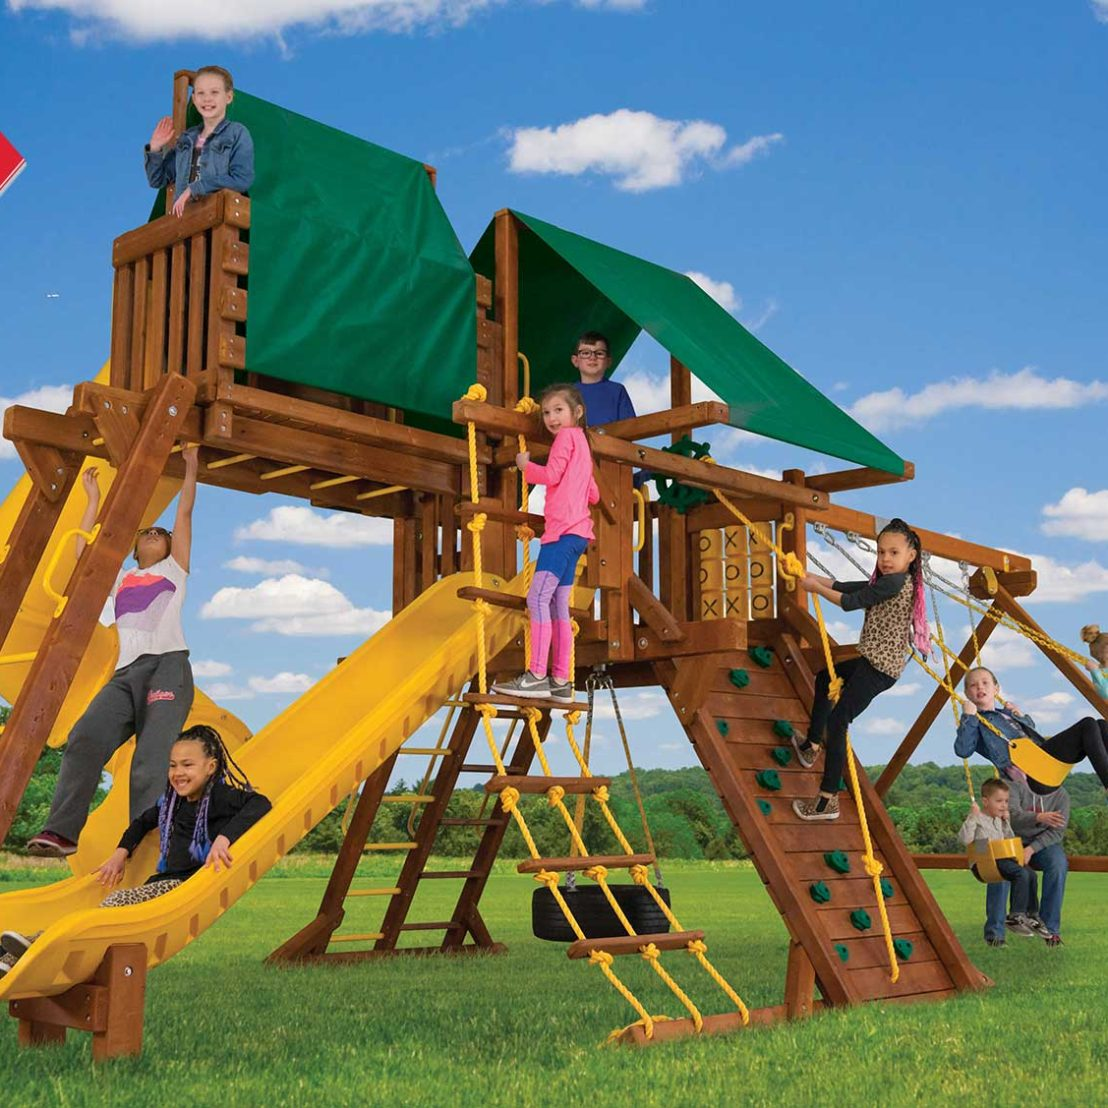 Sunshine Turbo Castle Pkg V Wooden Swing Set